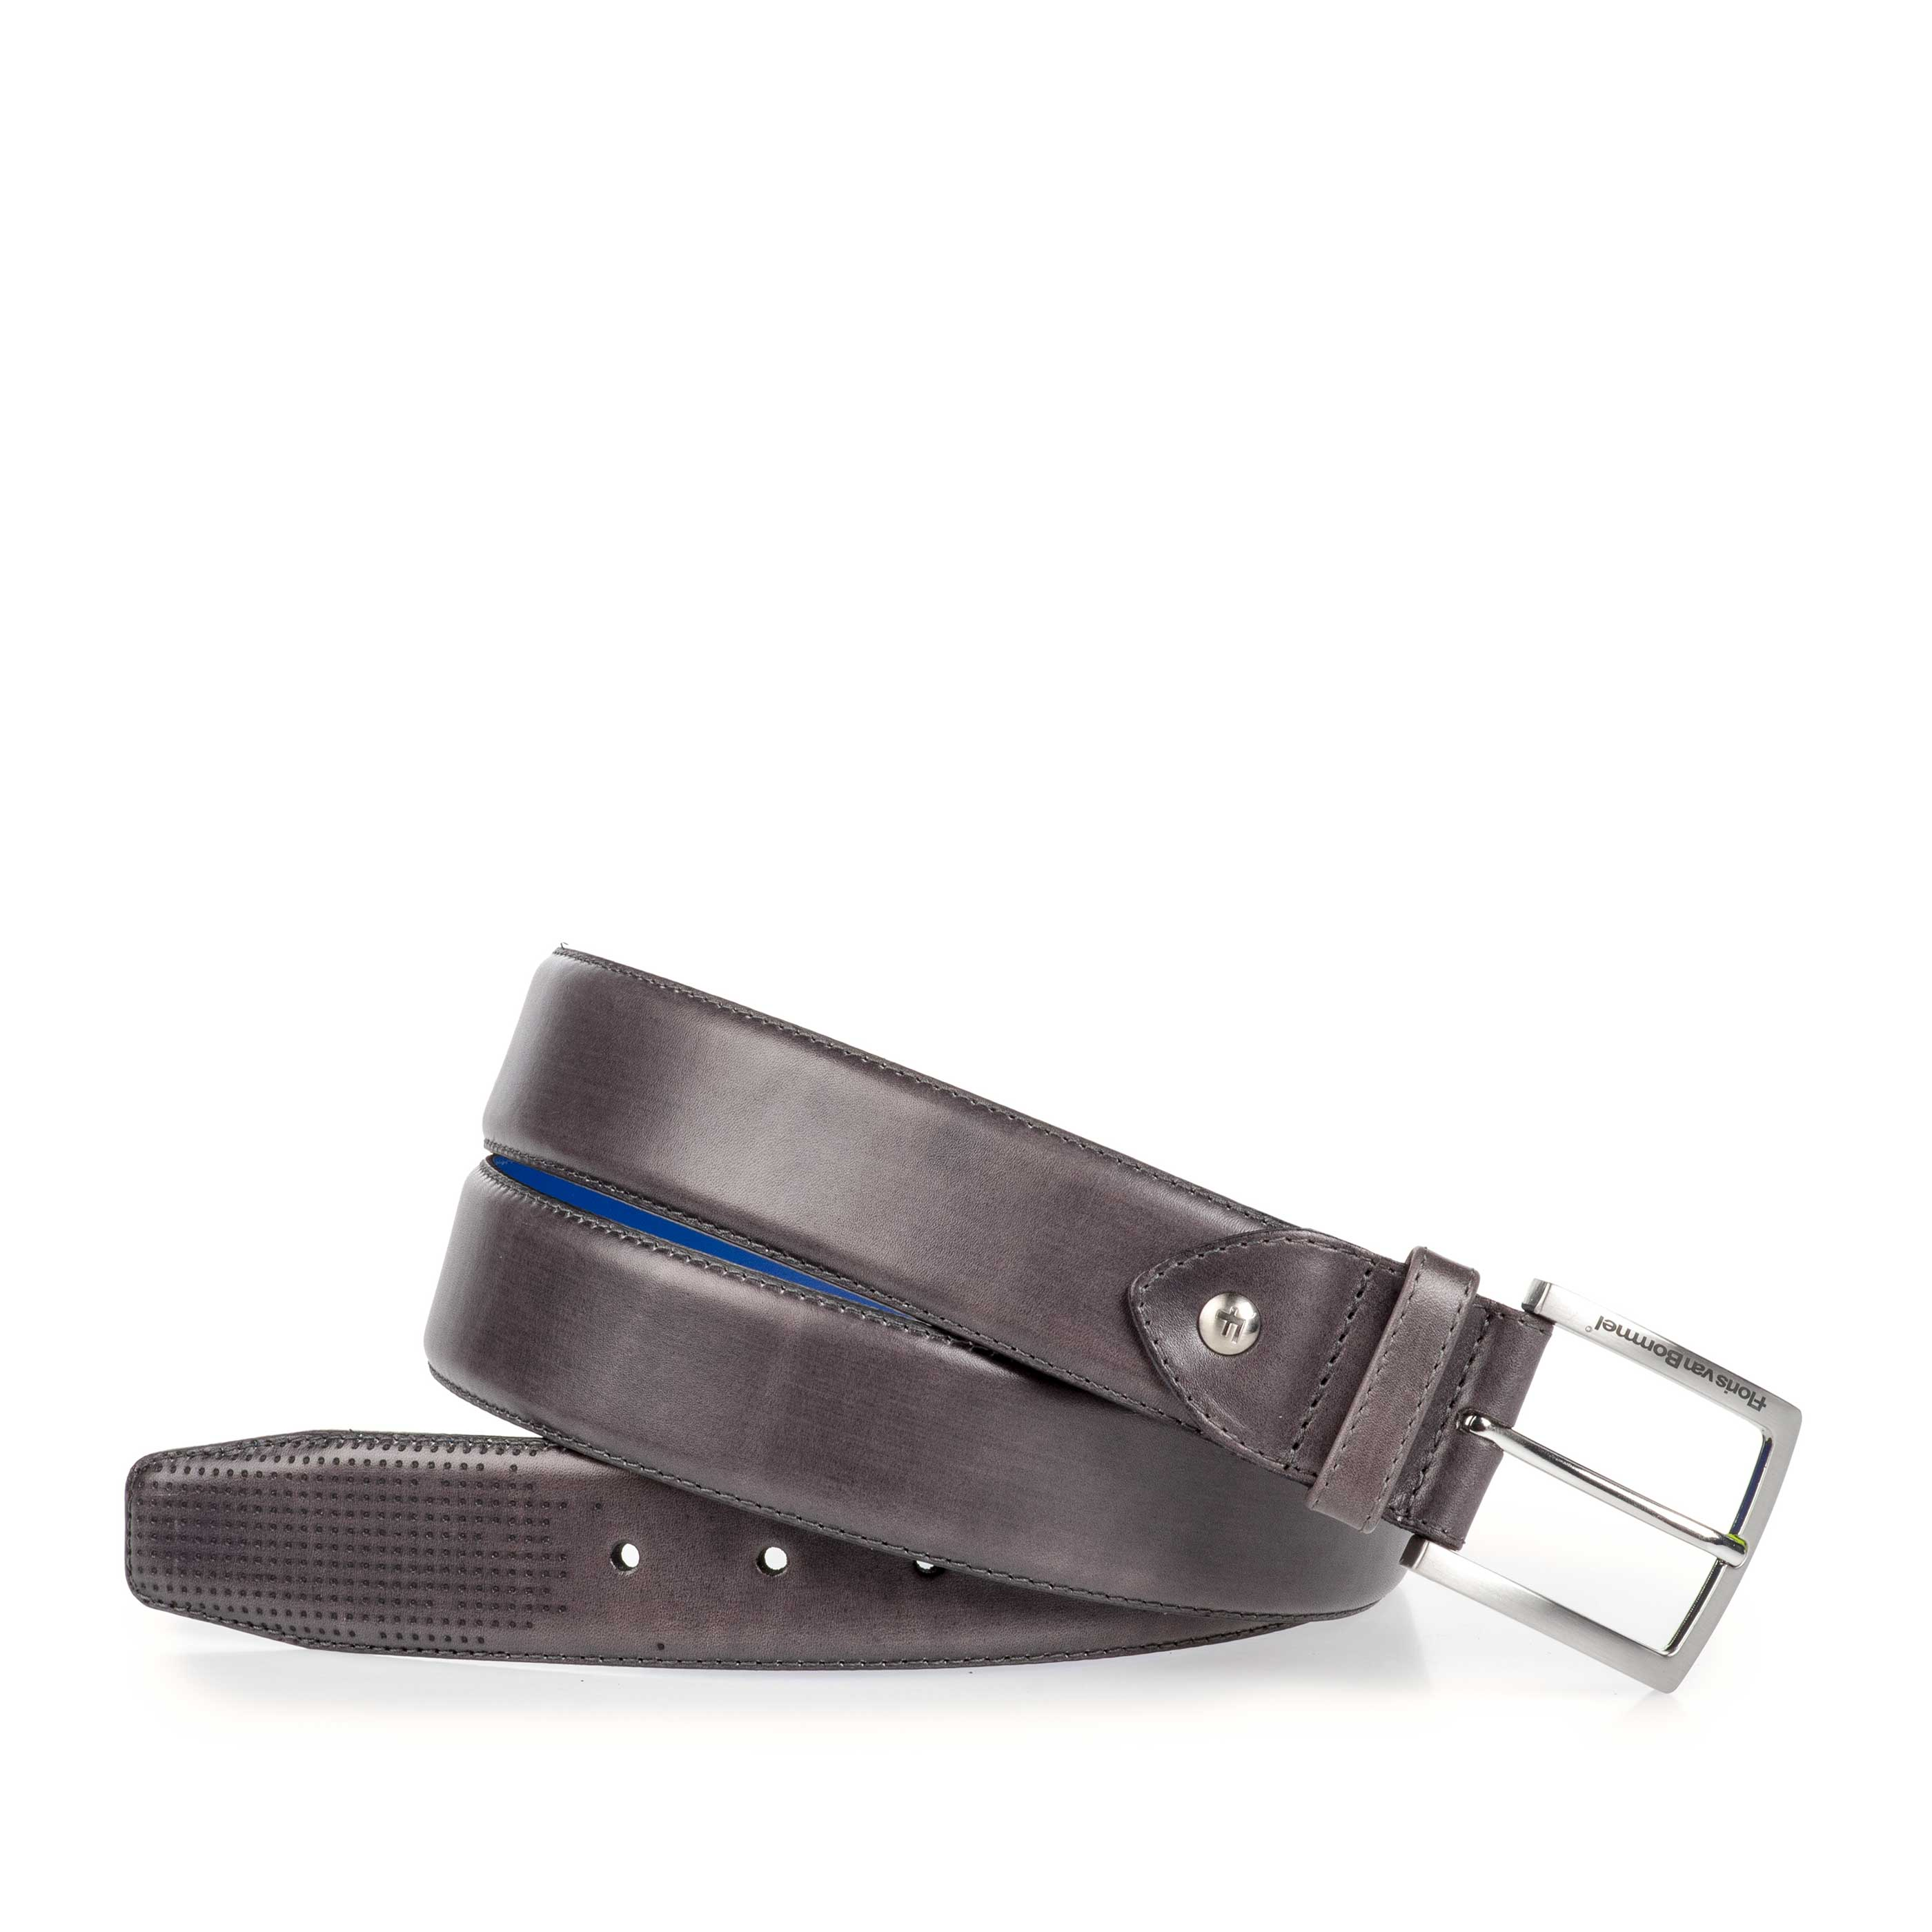 75187/00 - Grey patterned calf's leather belt